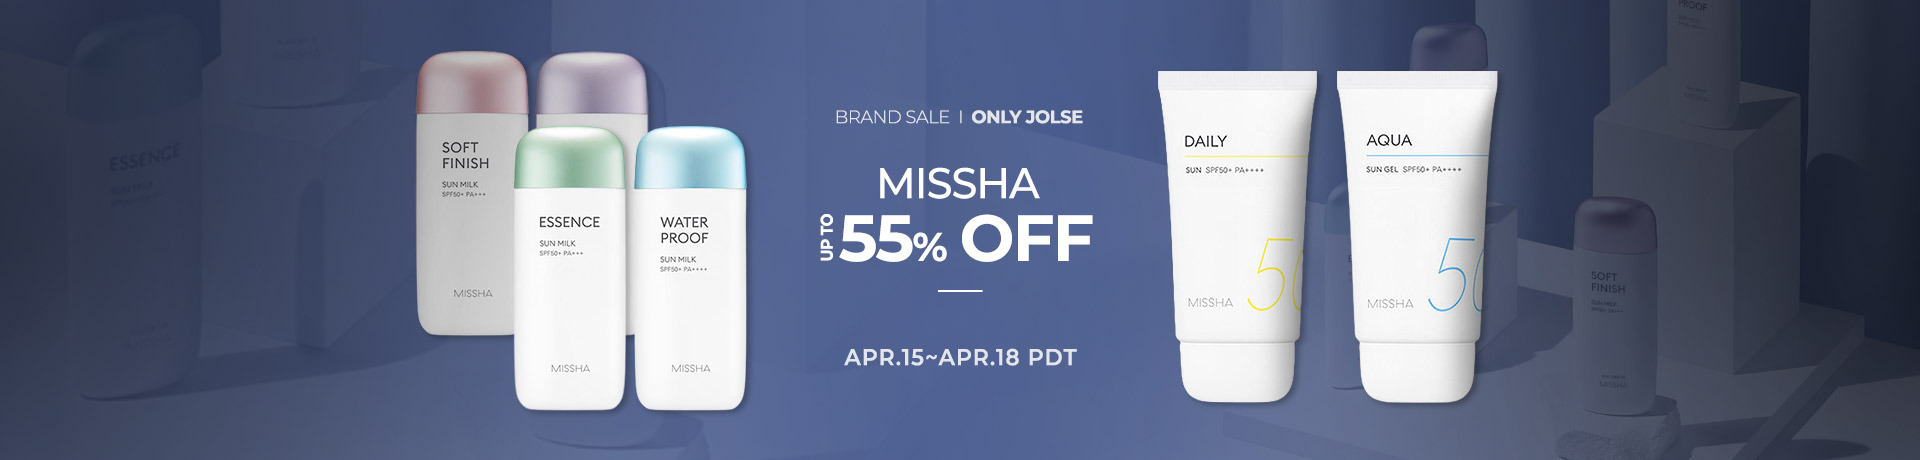 MISSHA Up to 55% OFF